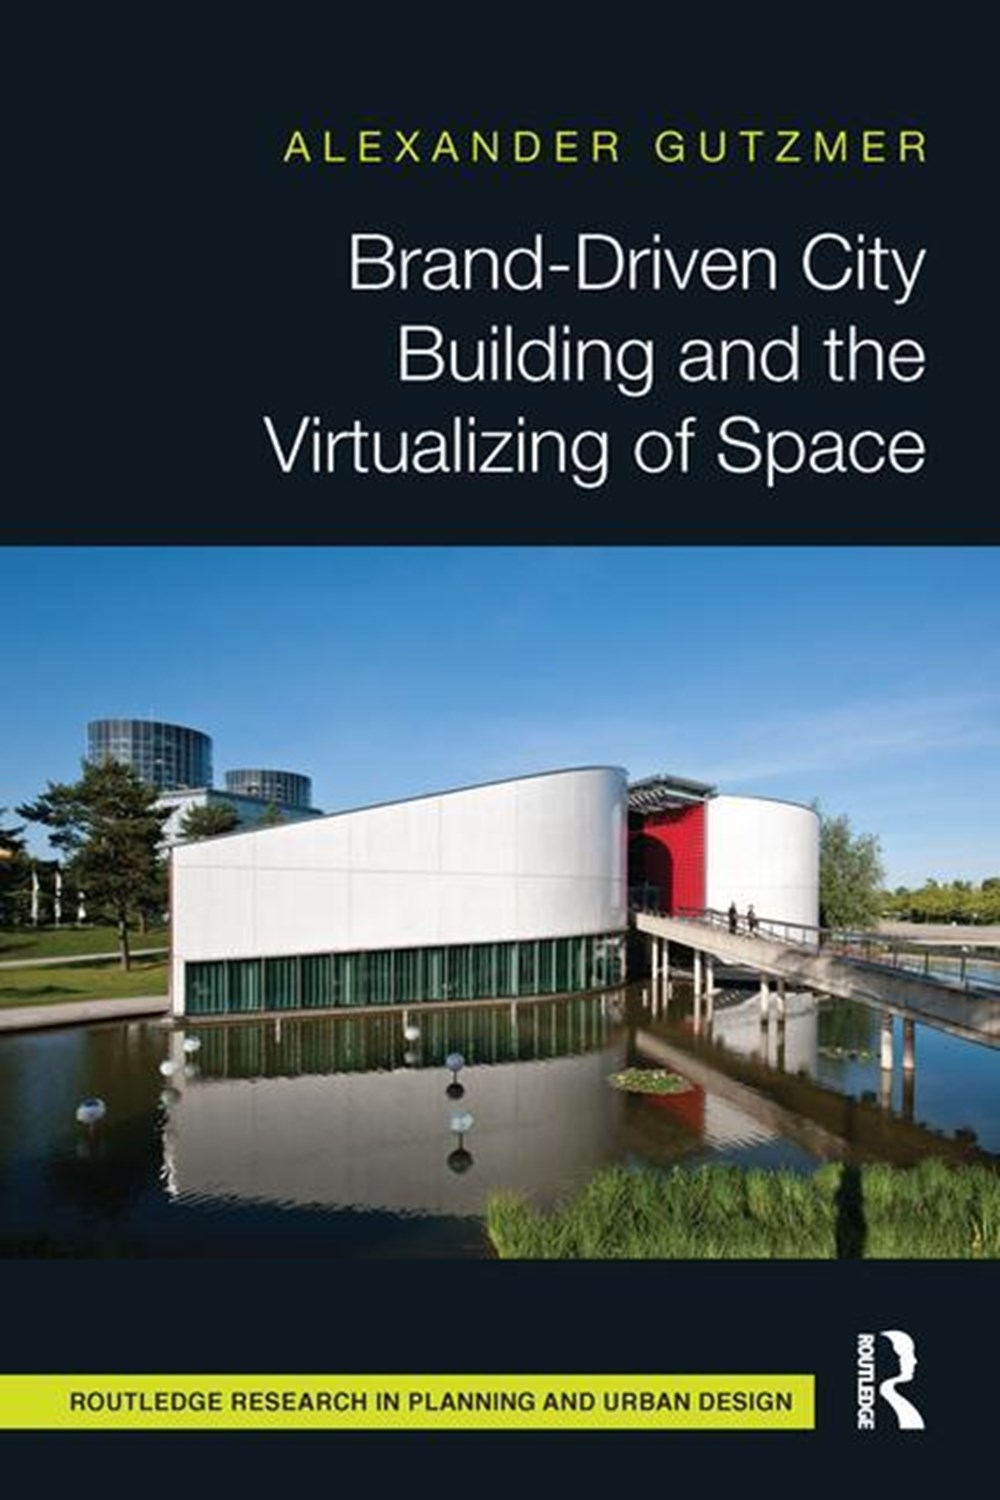 Brand-Driven City Building and the Virtualizing of Space